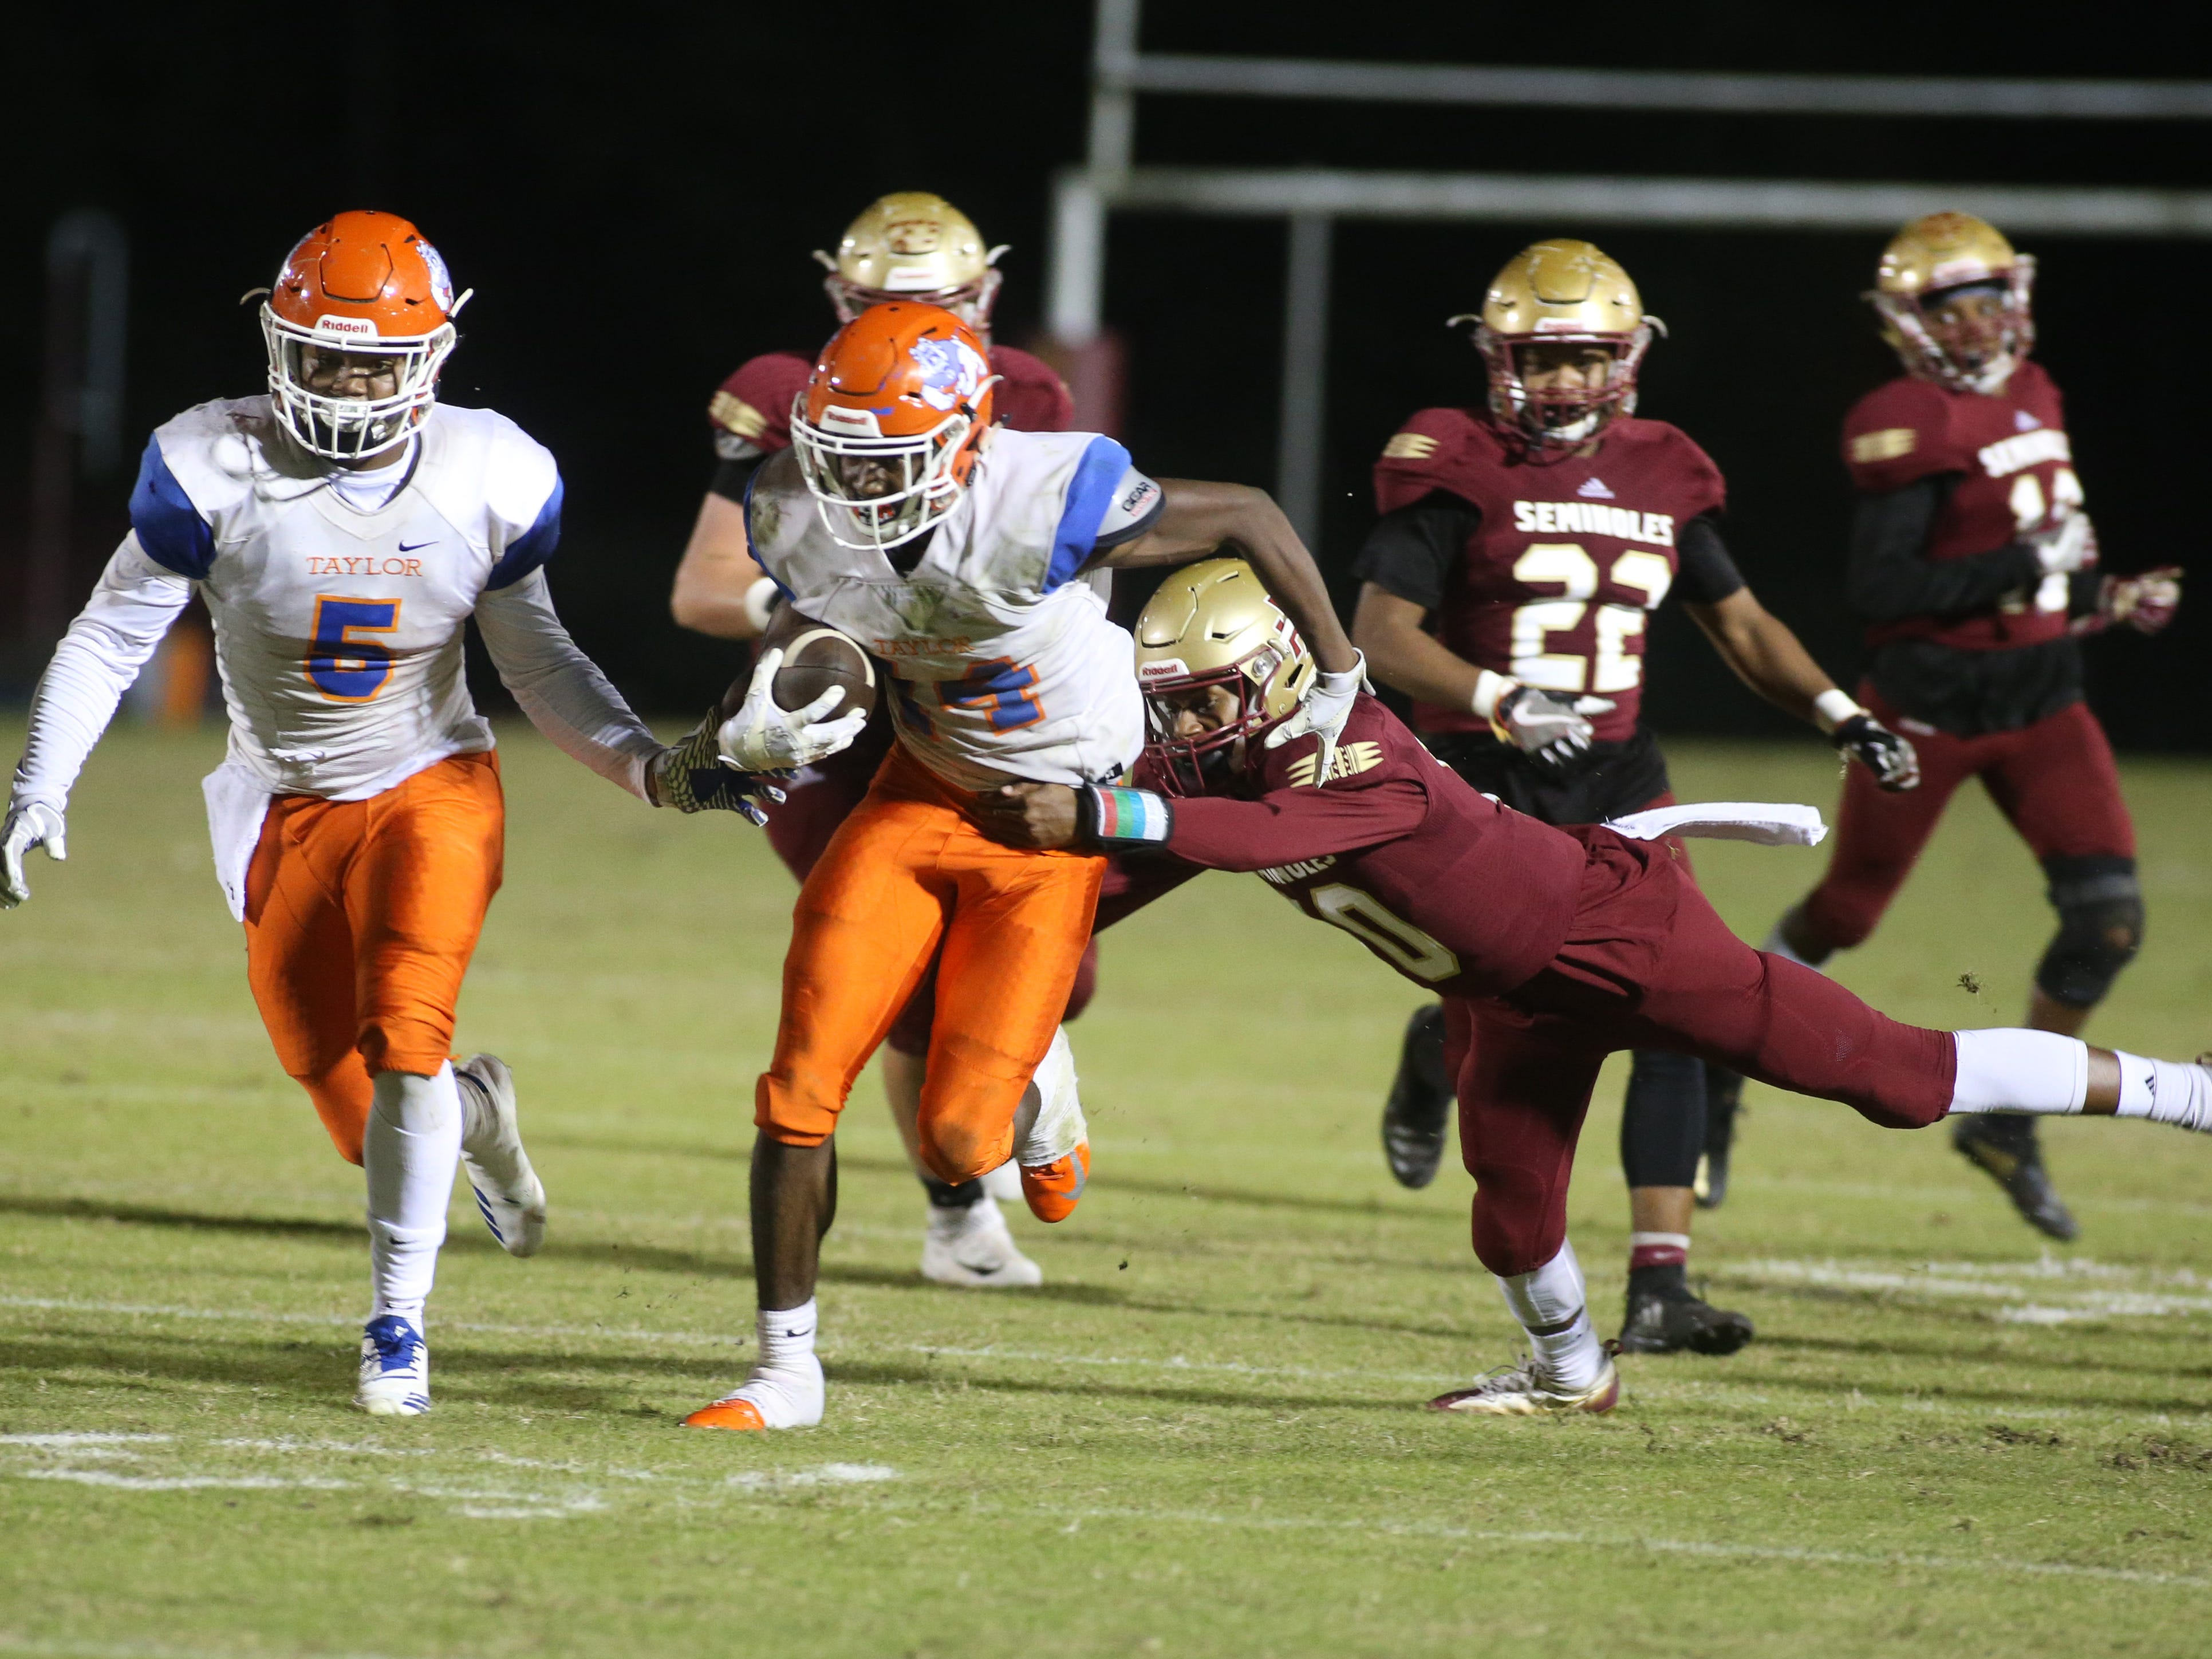 Taylor County wide receiver Robert Glanton (14) fights off a Florida High defender during a Region 1-3A final on Friday, Nov. 23, 2018.